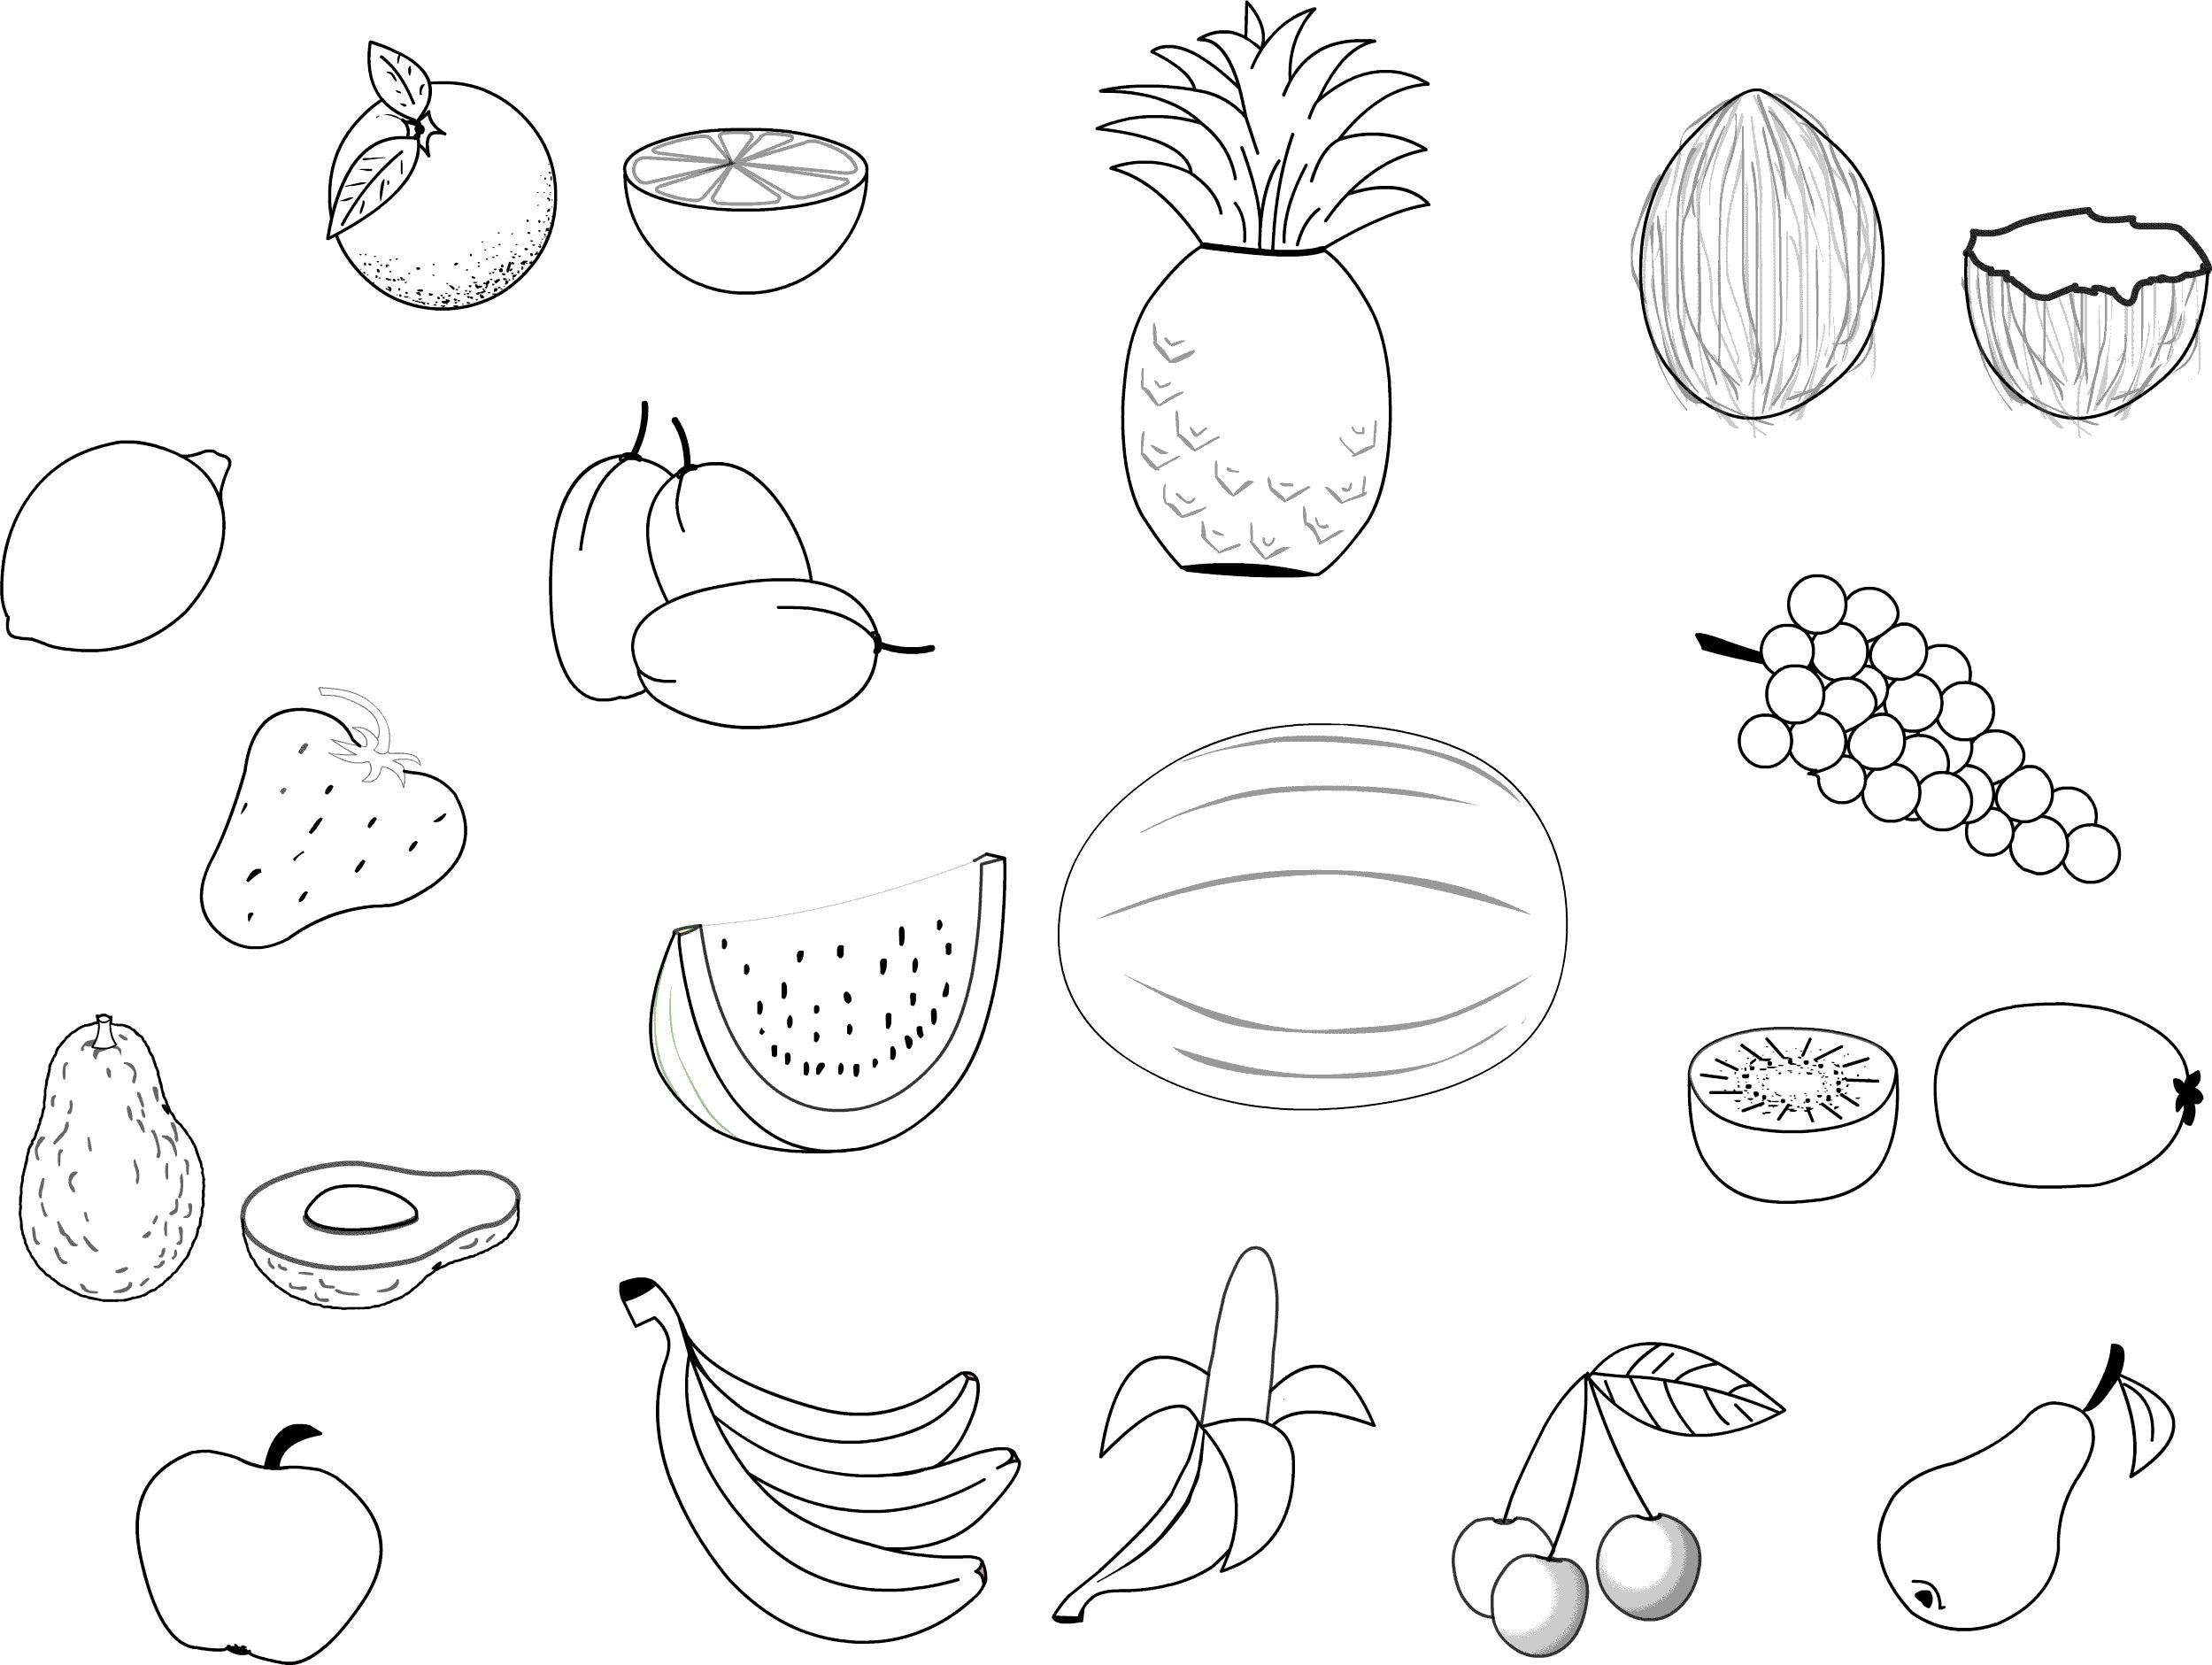 Fruits and vegetables free to color for kids - Fruits And Vegetables ...